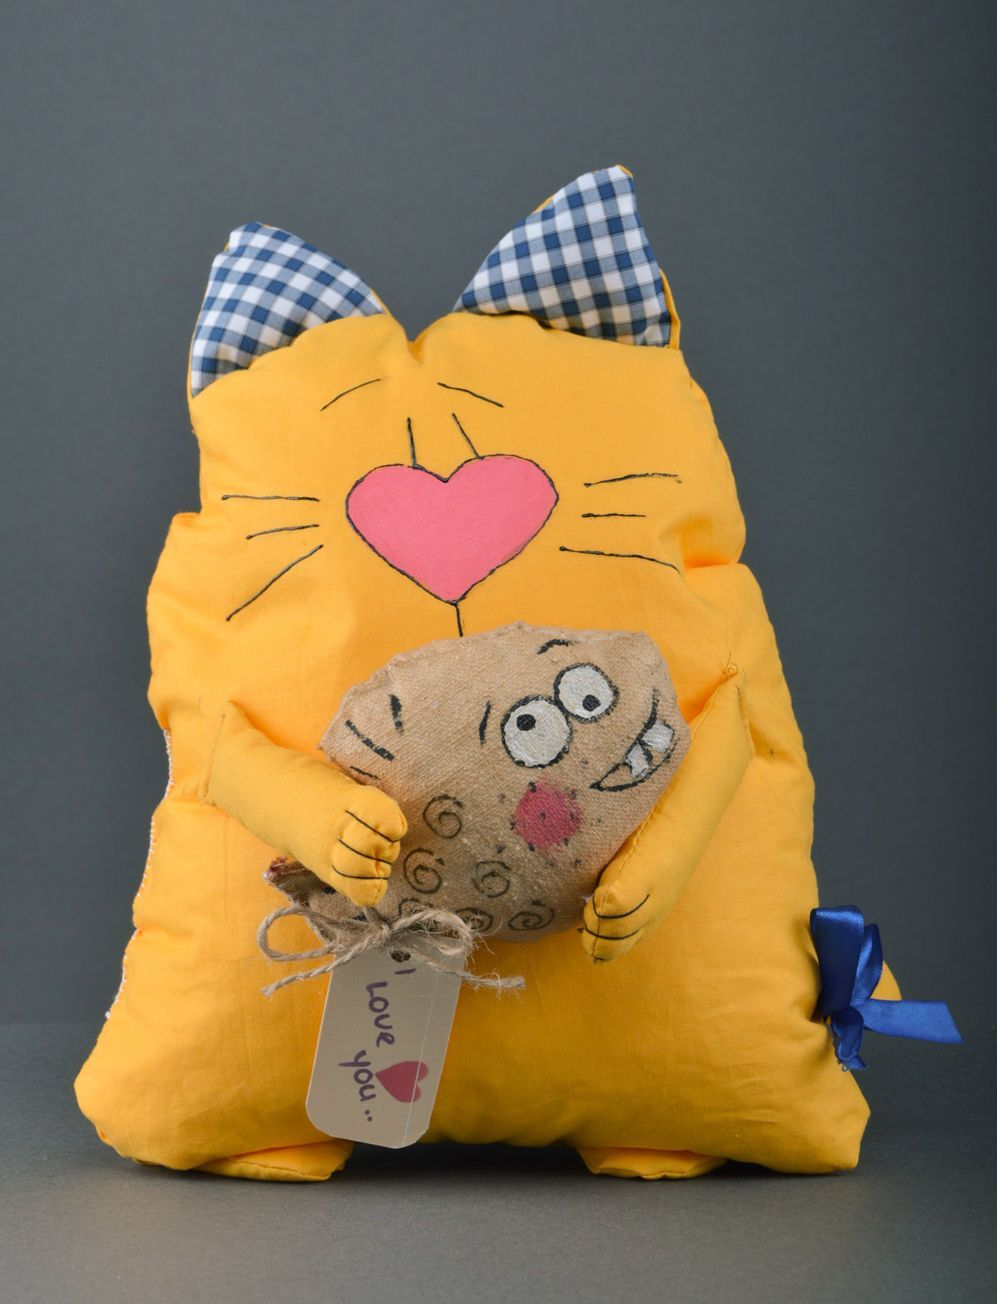 Large handmade aroma sachet pillow yellow toy cat with herbs inside photo 1